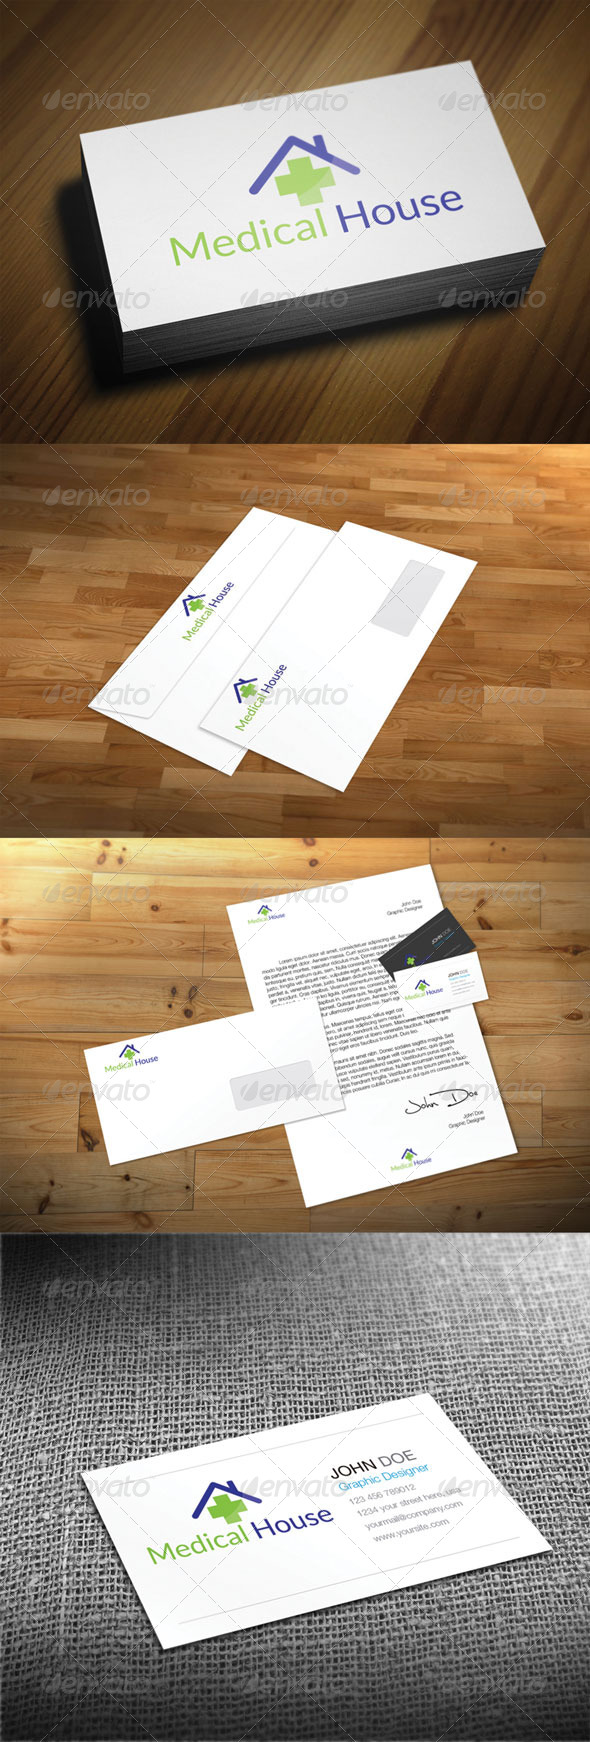 GraphicRiver Medical House 4825824